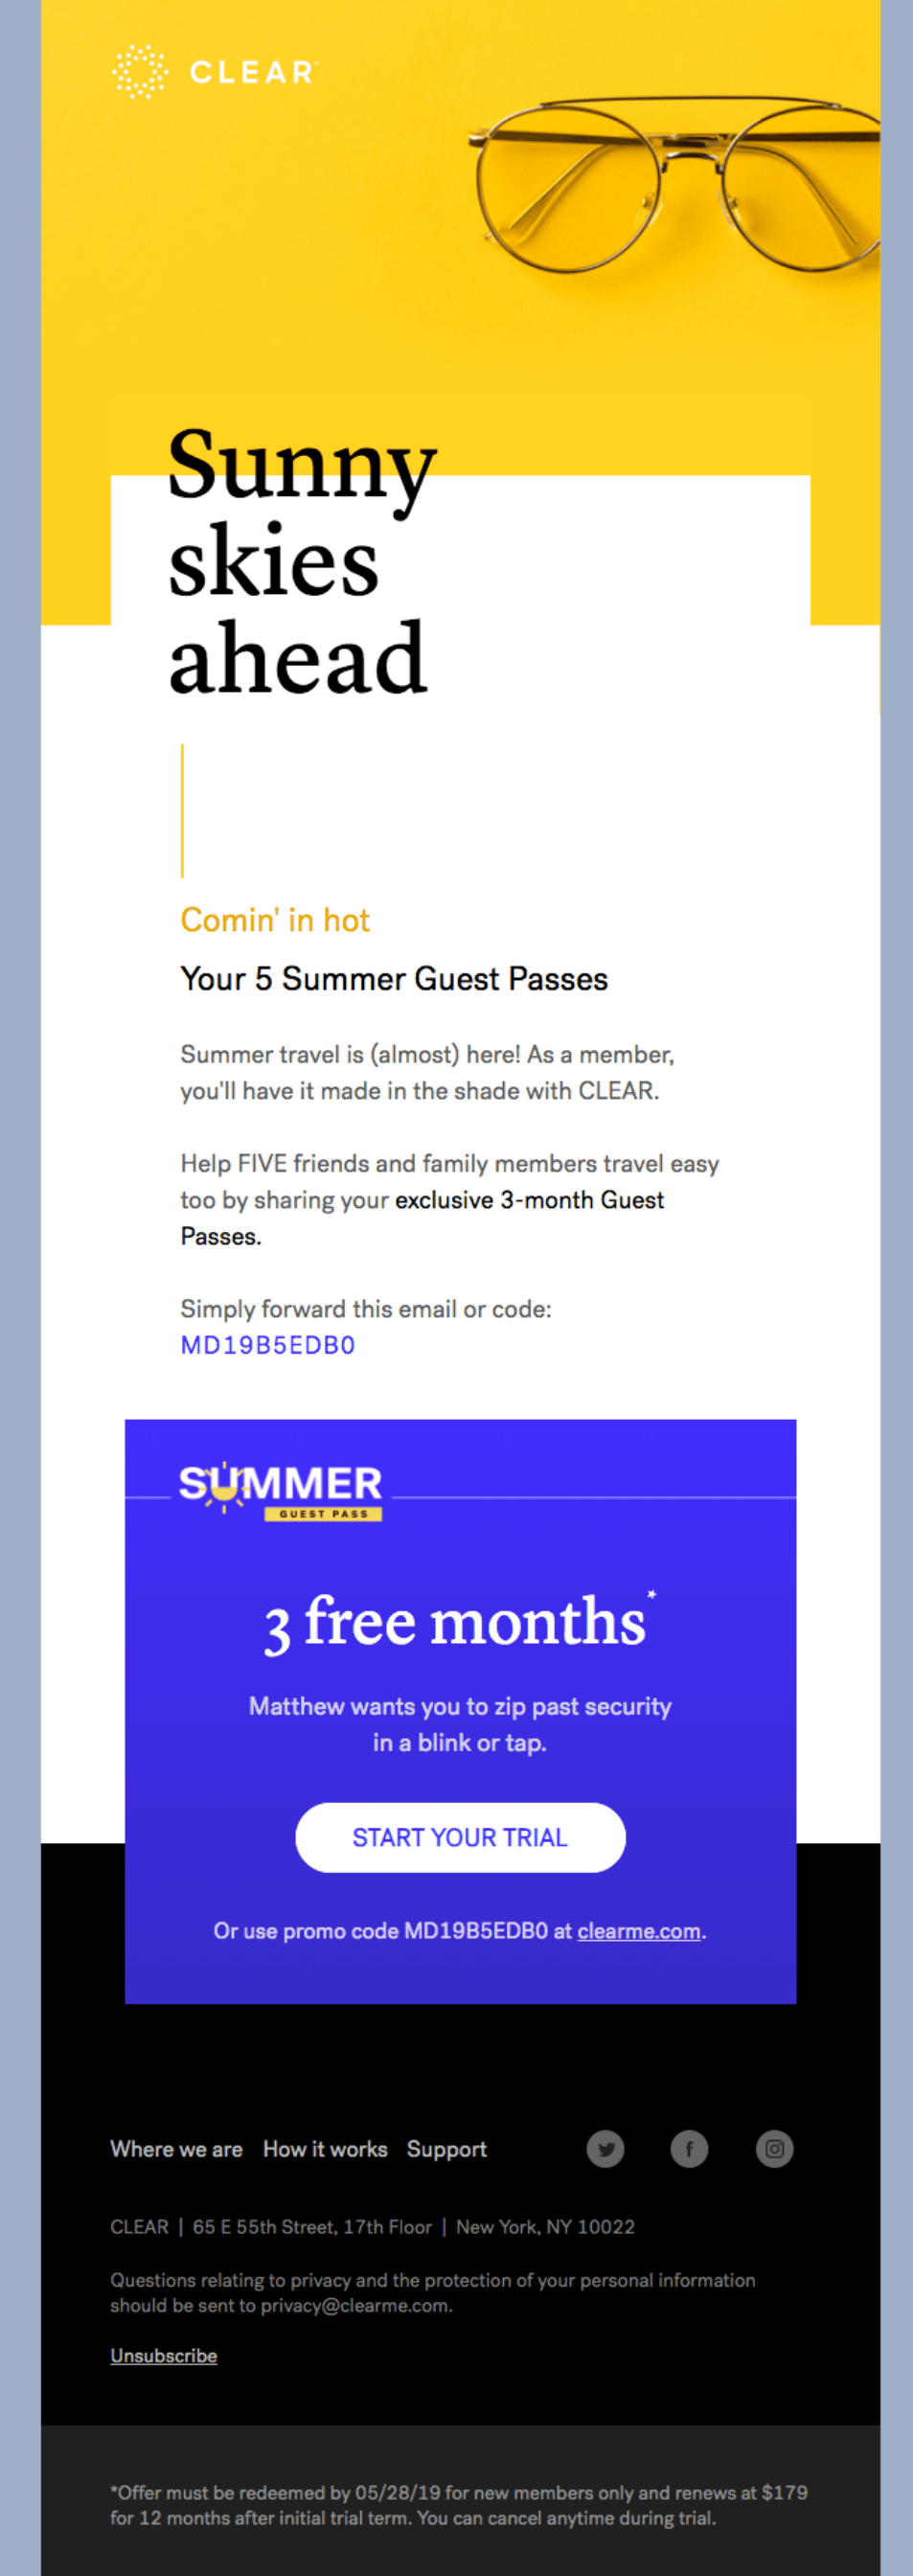 Email marketing example Clear